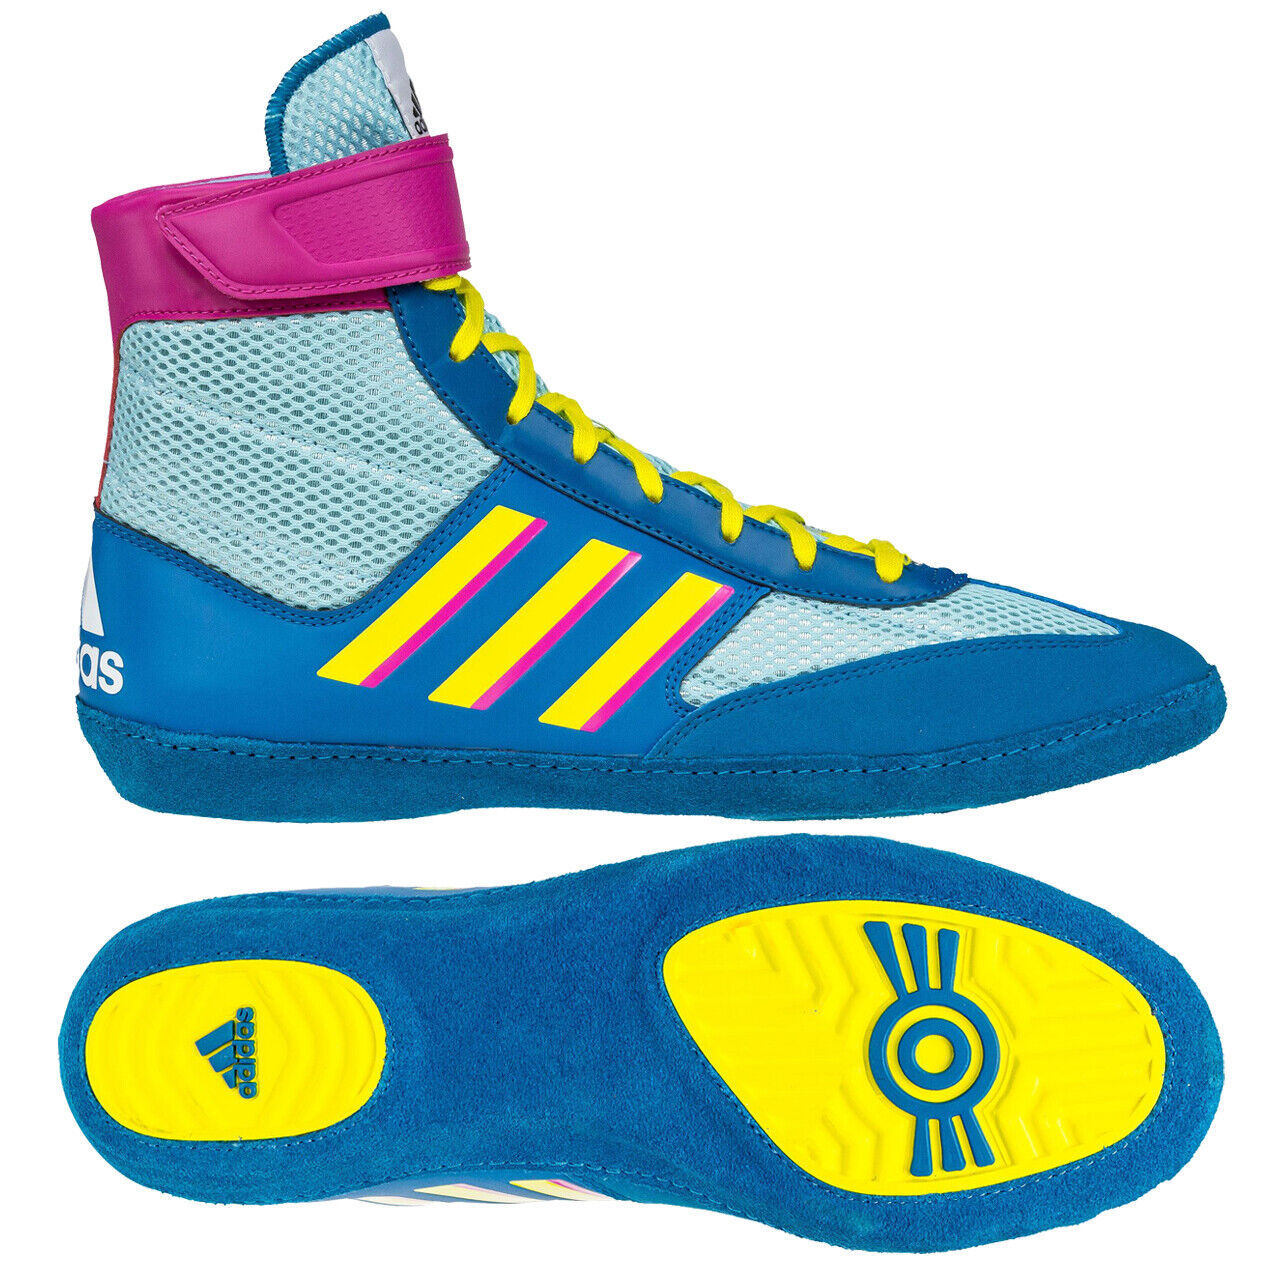 Adidas Combat Speed 5 Wrestling Boots G25907 Adult Boxing shoes  Mens Womens MMA  best-selling